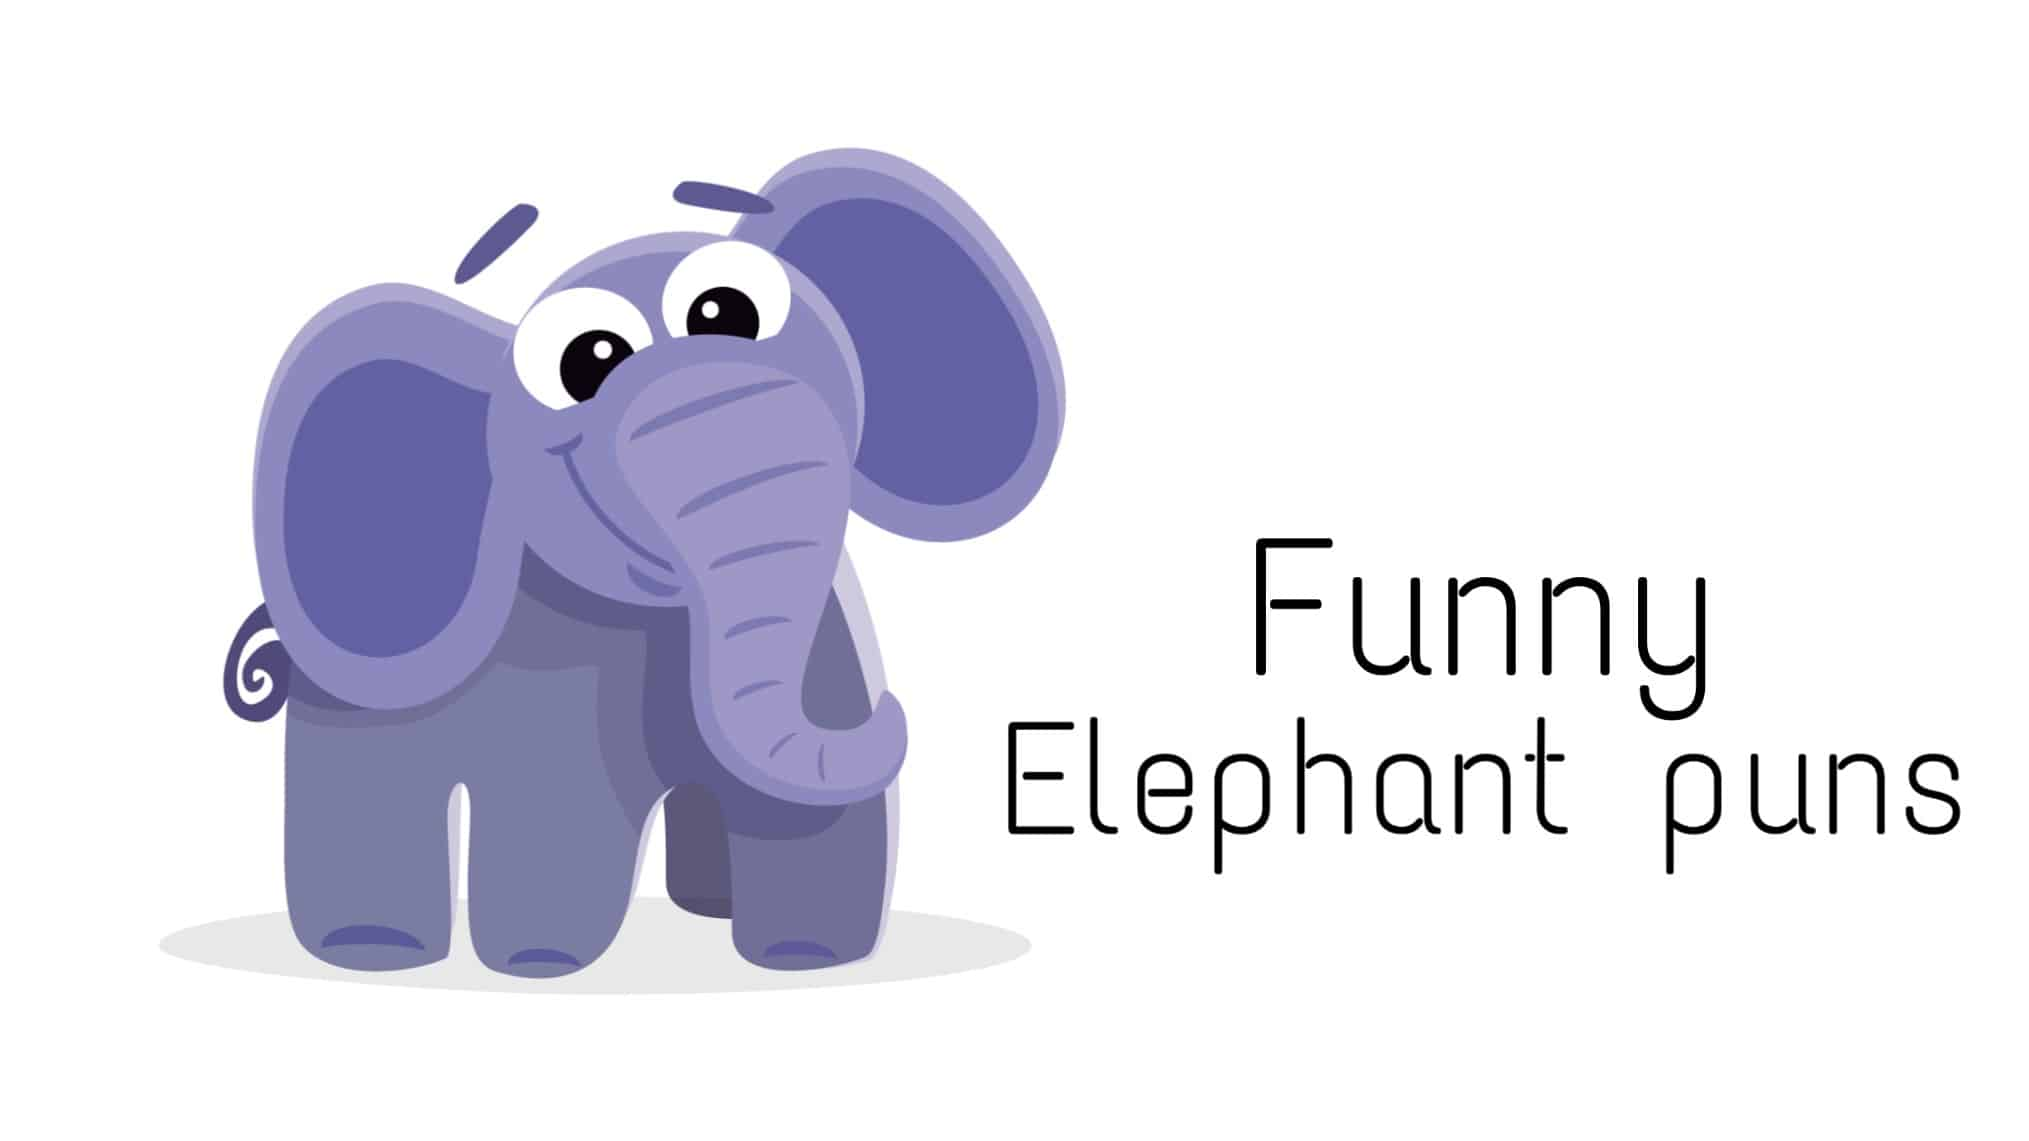 Elephant puns to make you giggle for hours